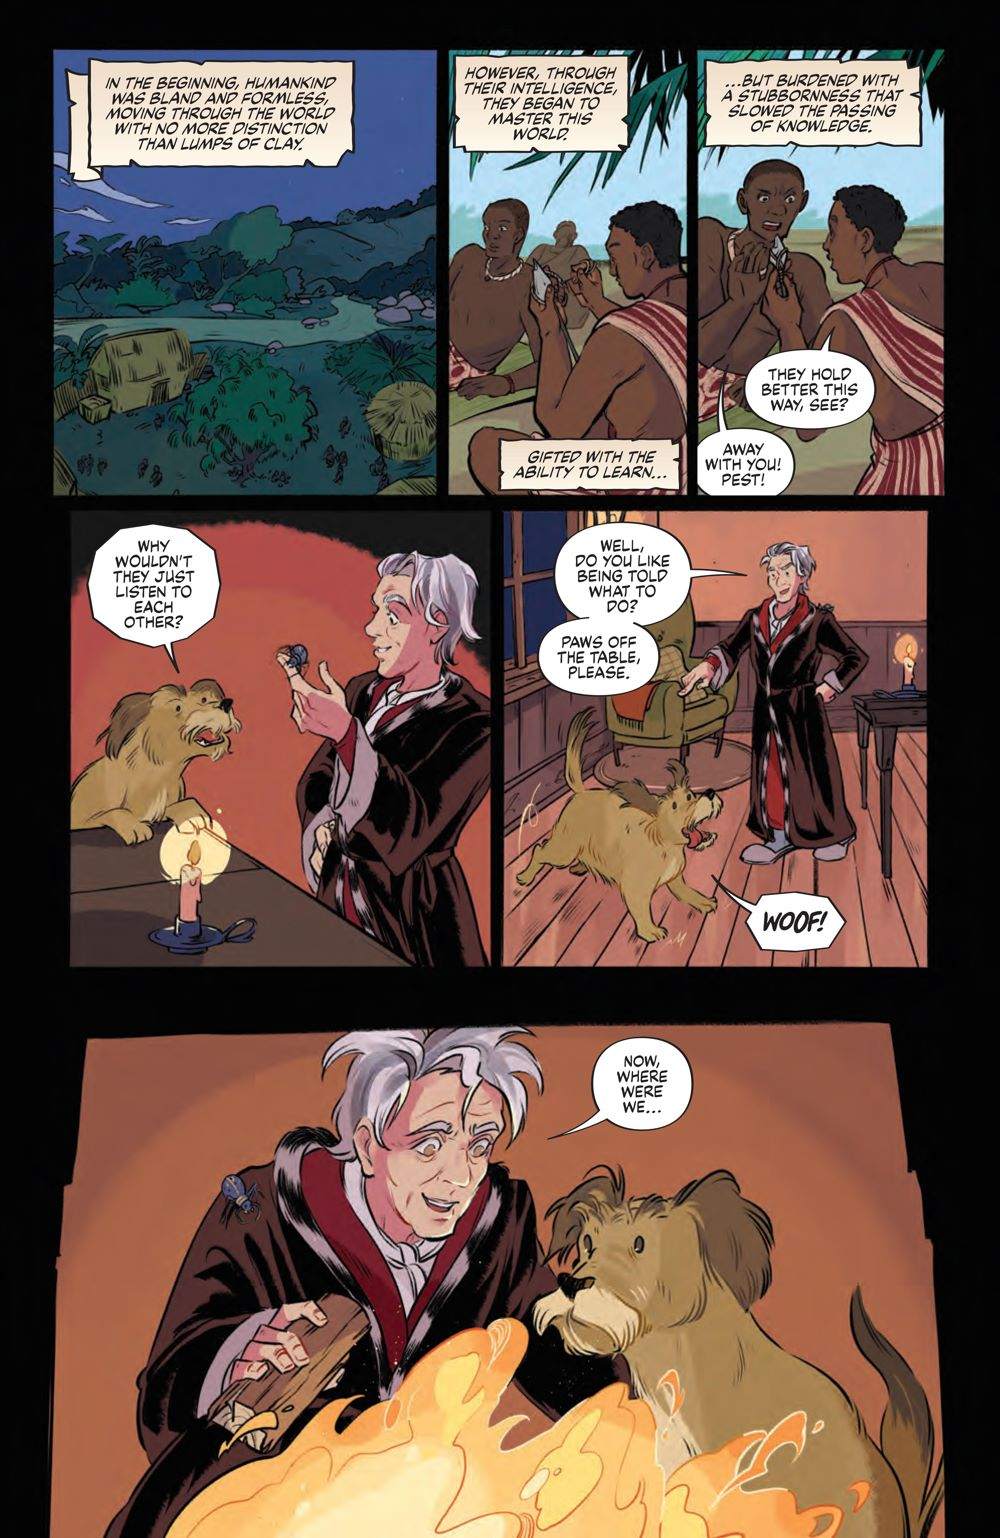 Storyteller_Tricksters_001_PRESS_4 ComicList Previews: JIM HENSON'S THE STORYTELLER TRICKSTERS #1 (OF 4)